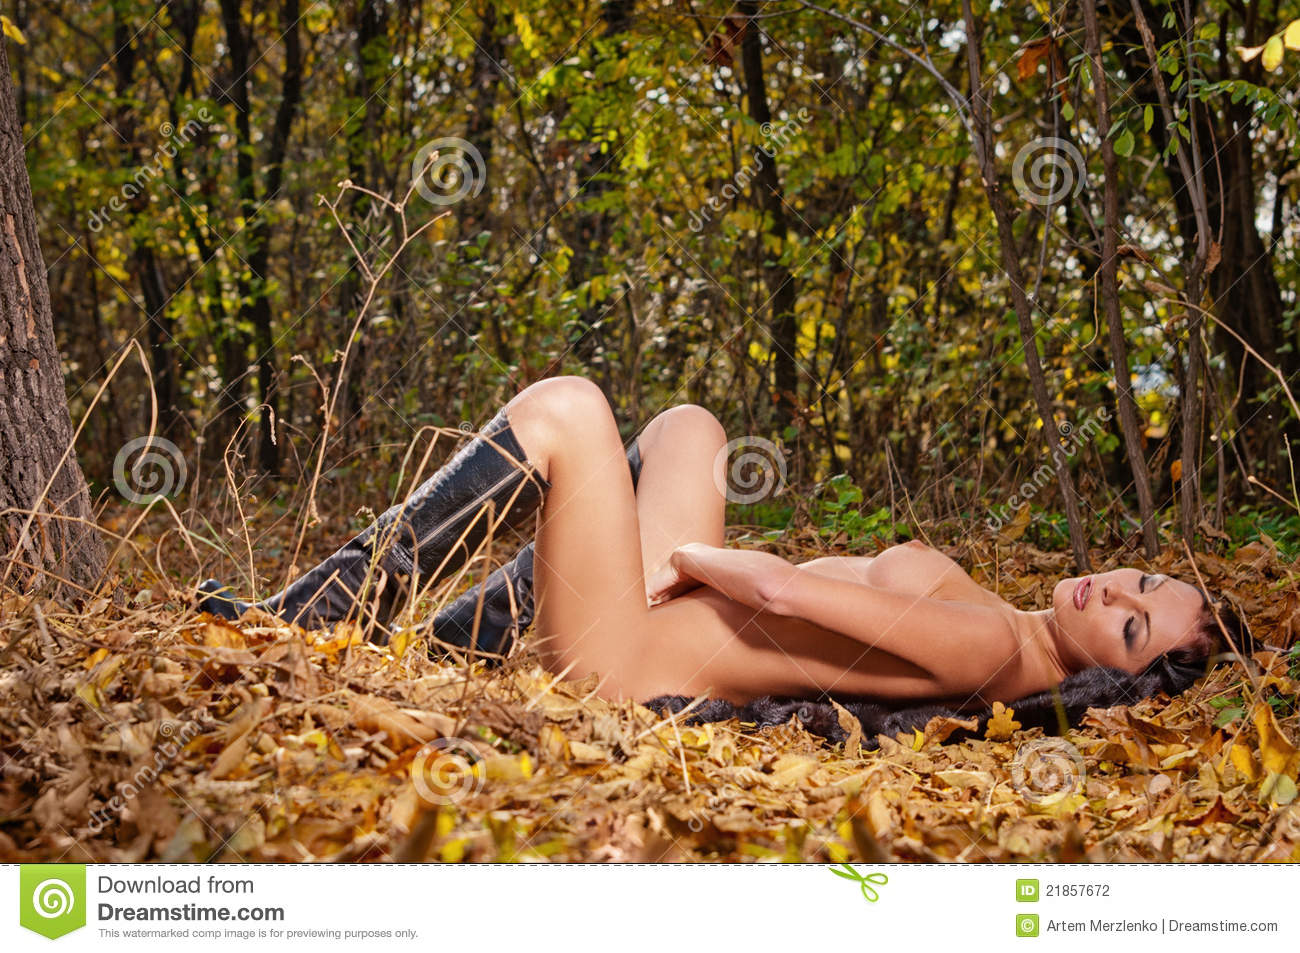 hot naked ladys in the woods